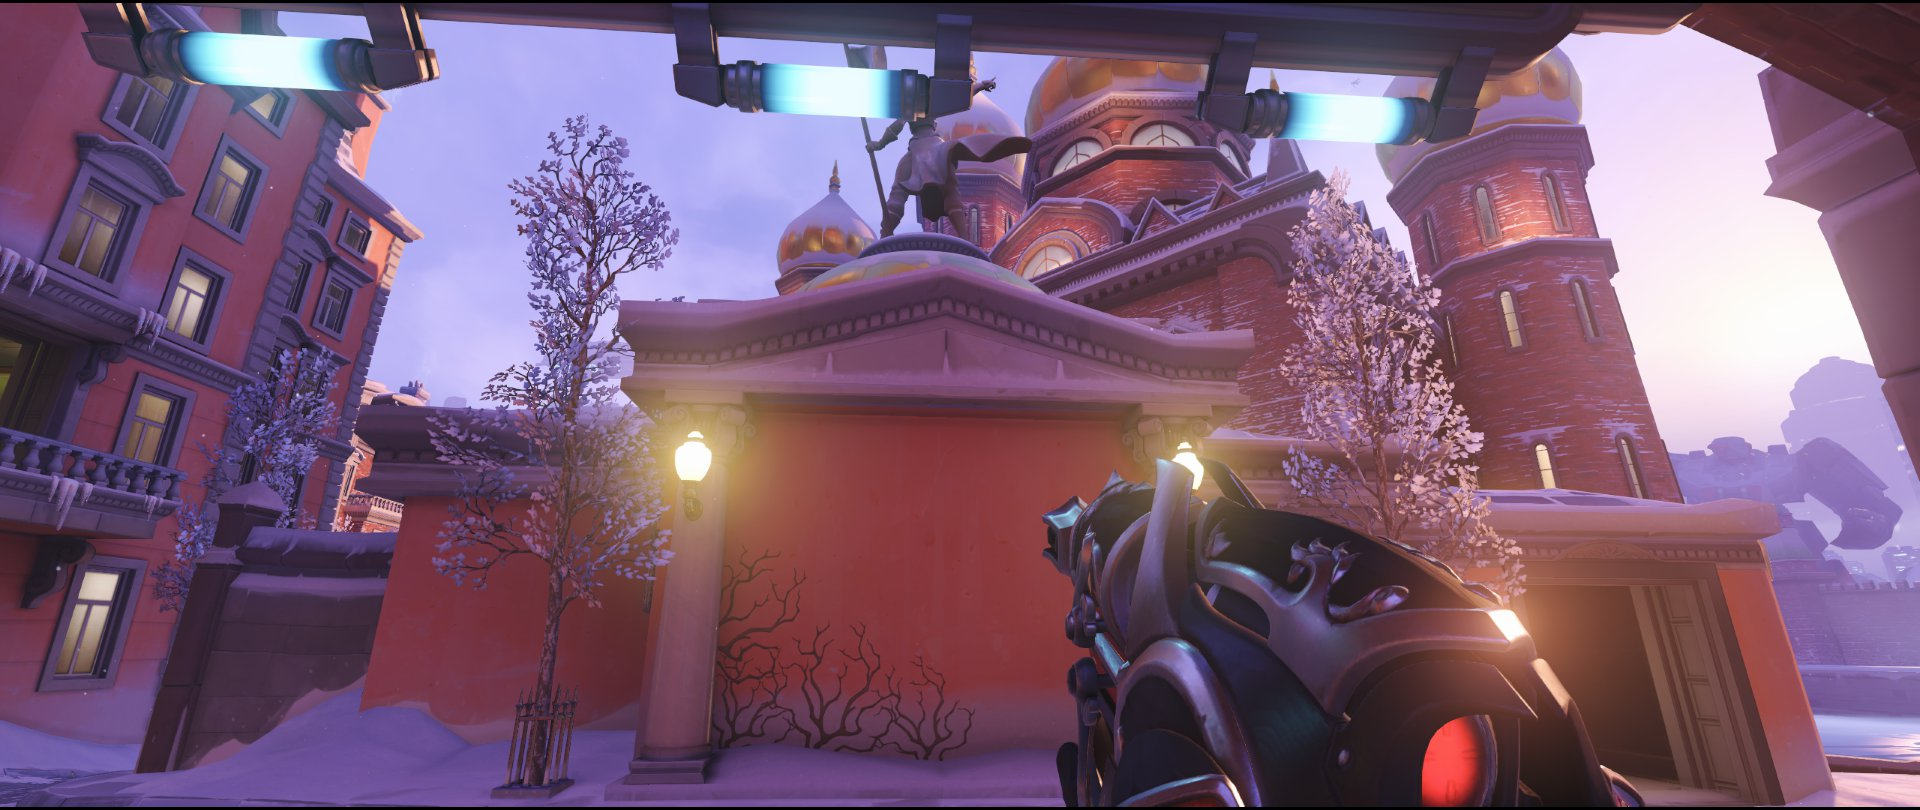 Shrine defense sniping spot Widowmaker Volskaya Industries Overwatch.jpg